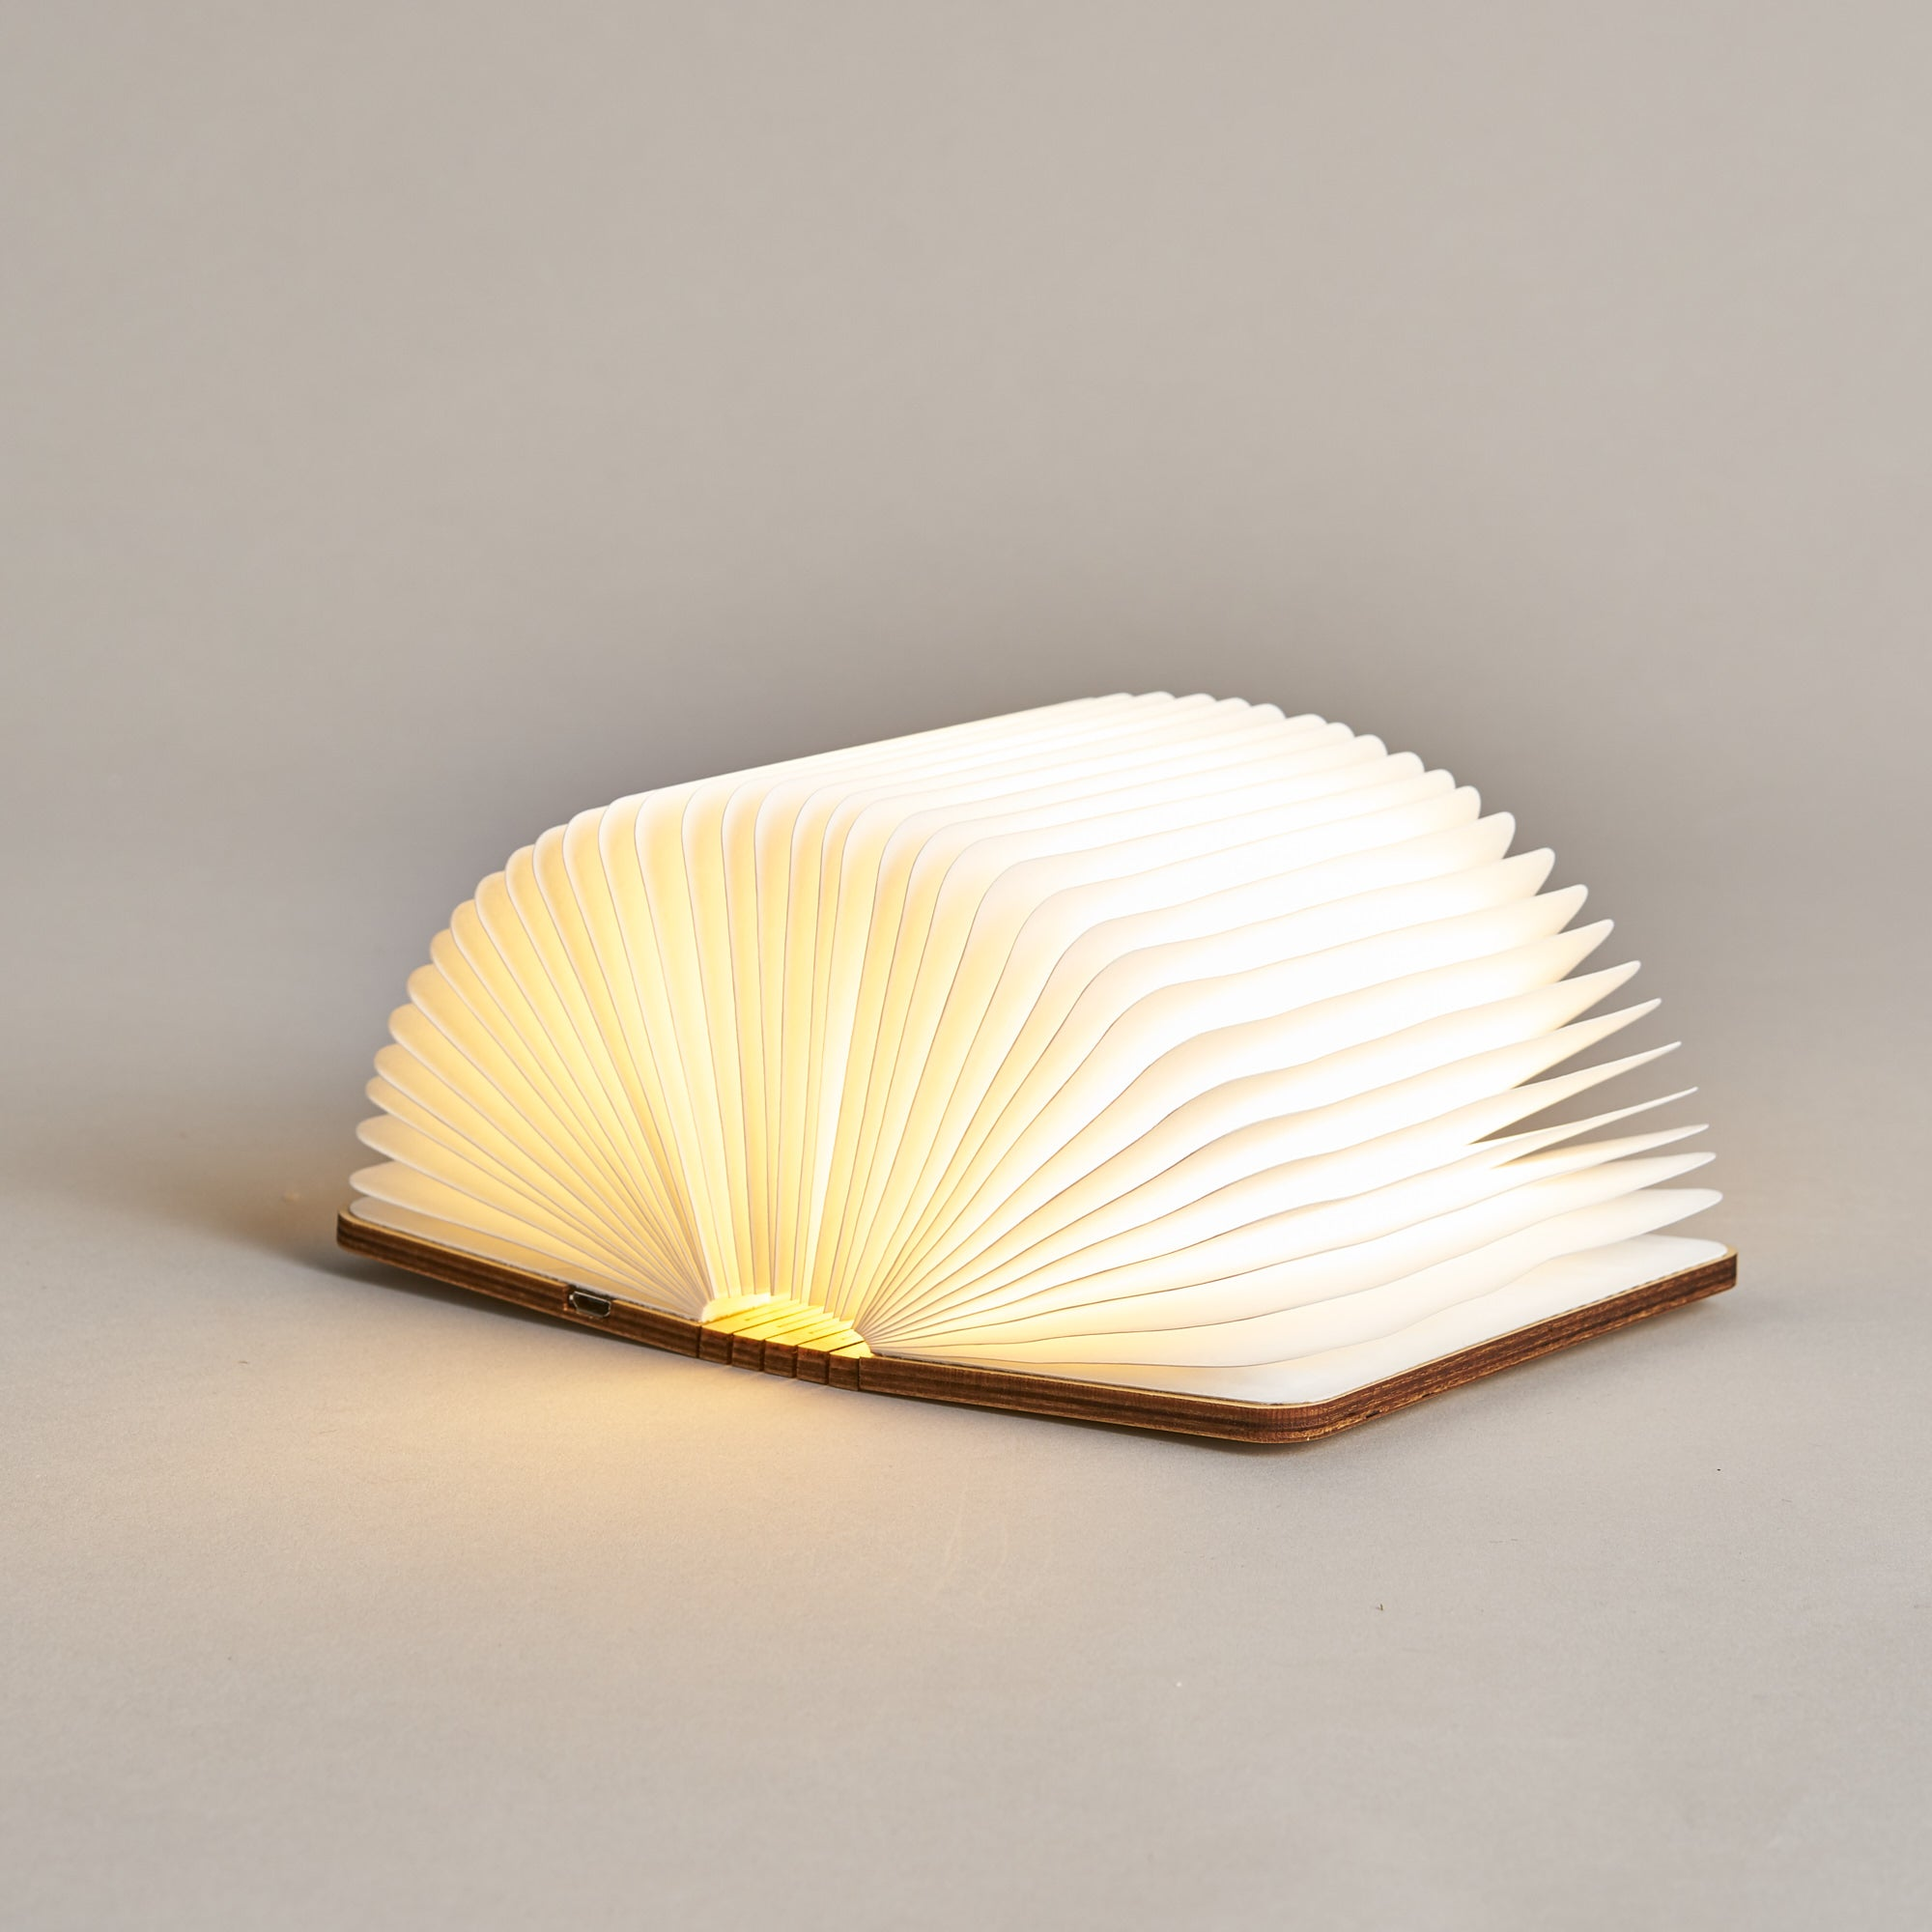 LED Book Light by Gingko